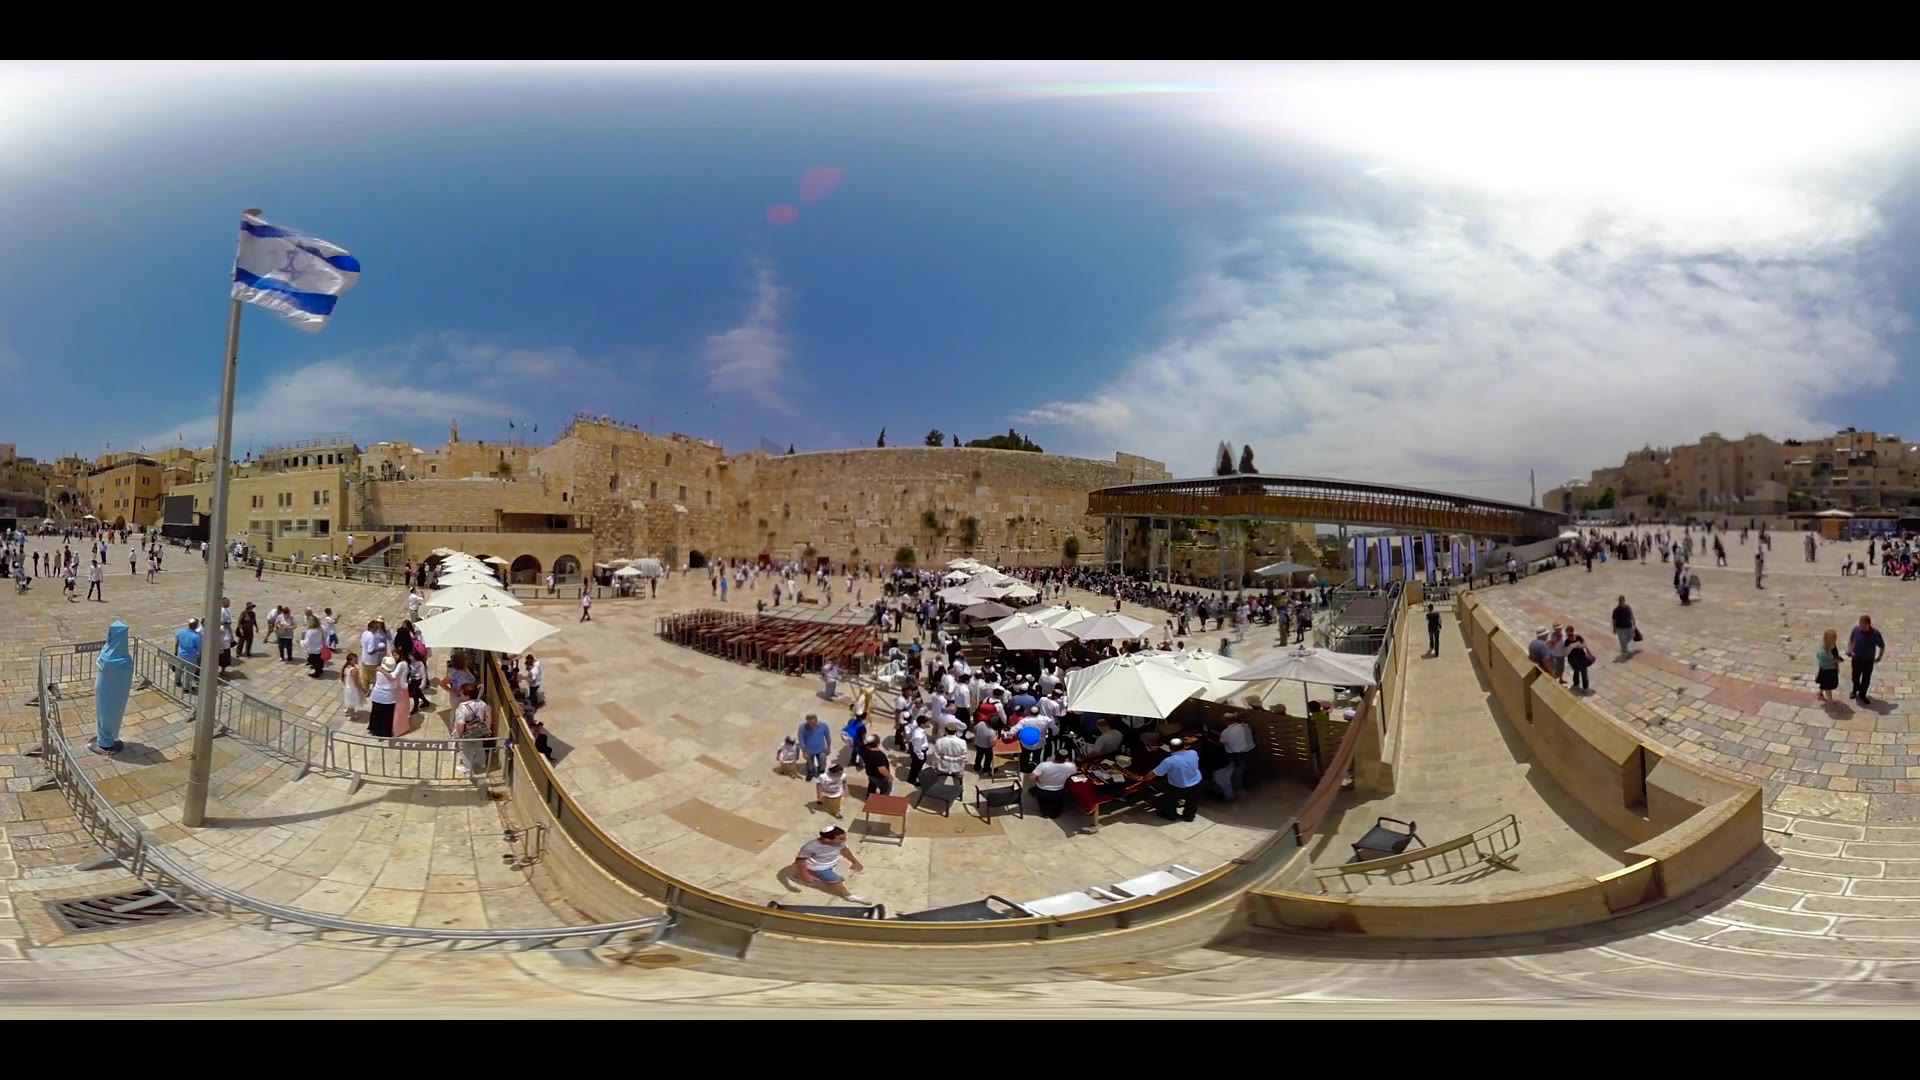 Jerusalem, Israel - May 9, 2016: 360VR video of Jewish prayers at the Western wall in the old city of Jerusalem Israel.